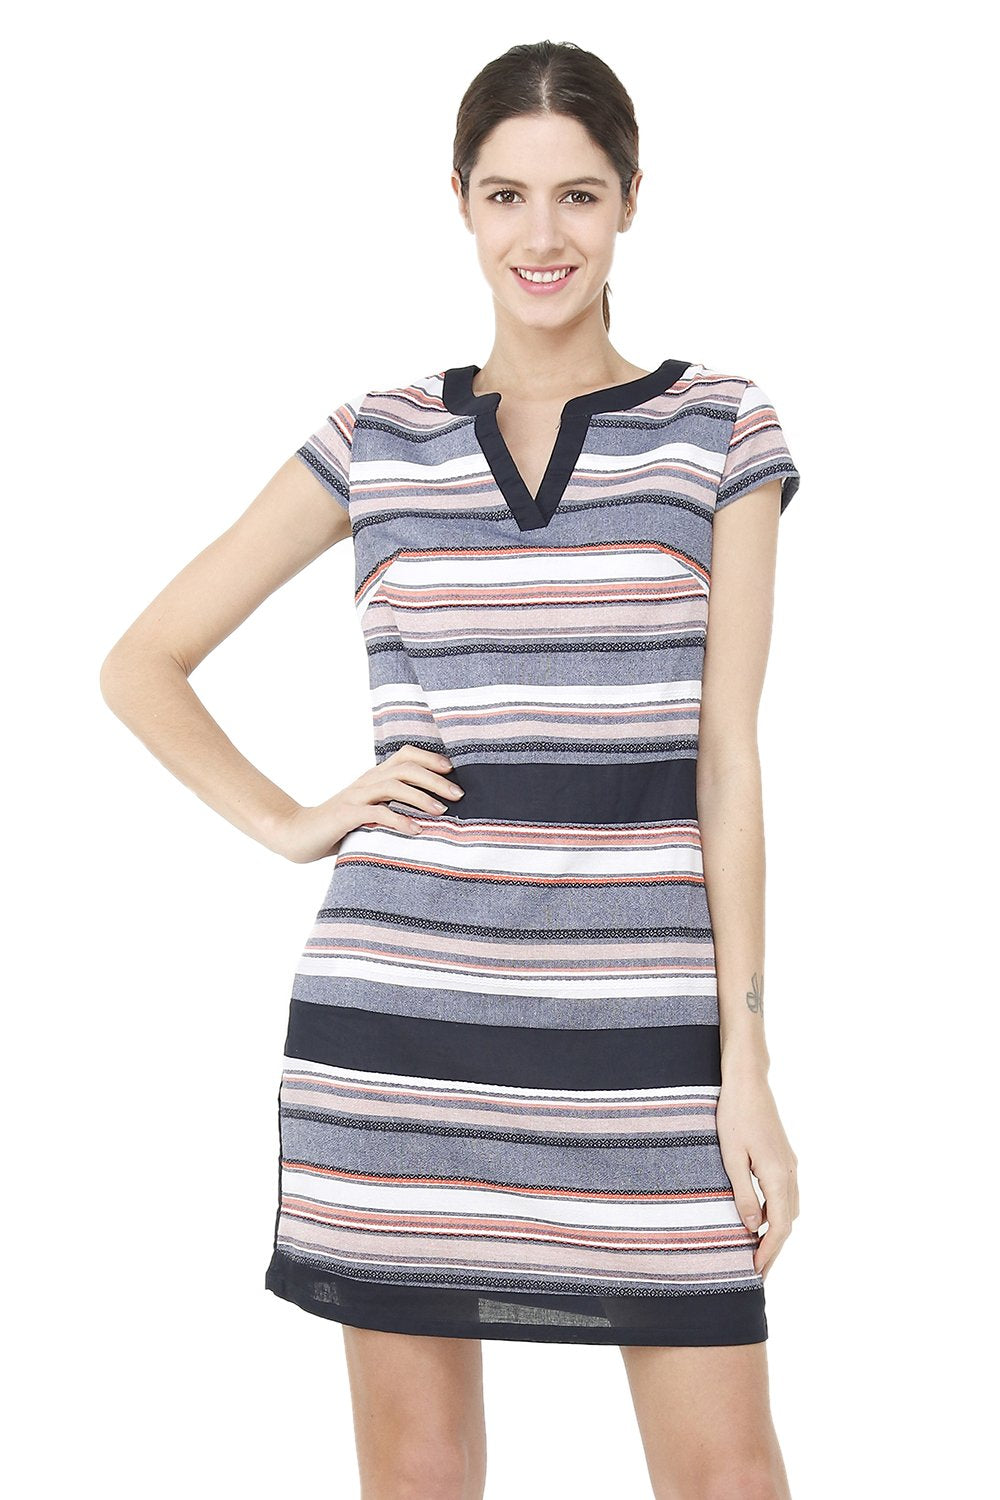 SHORT DRESS WITH TUNISIAN COLLAR AND TRI-COLORS ON THE FRONT